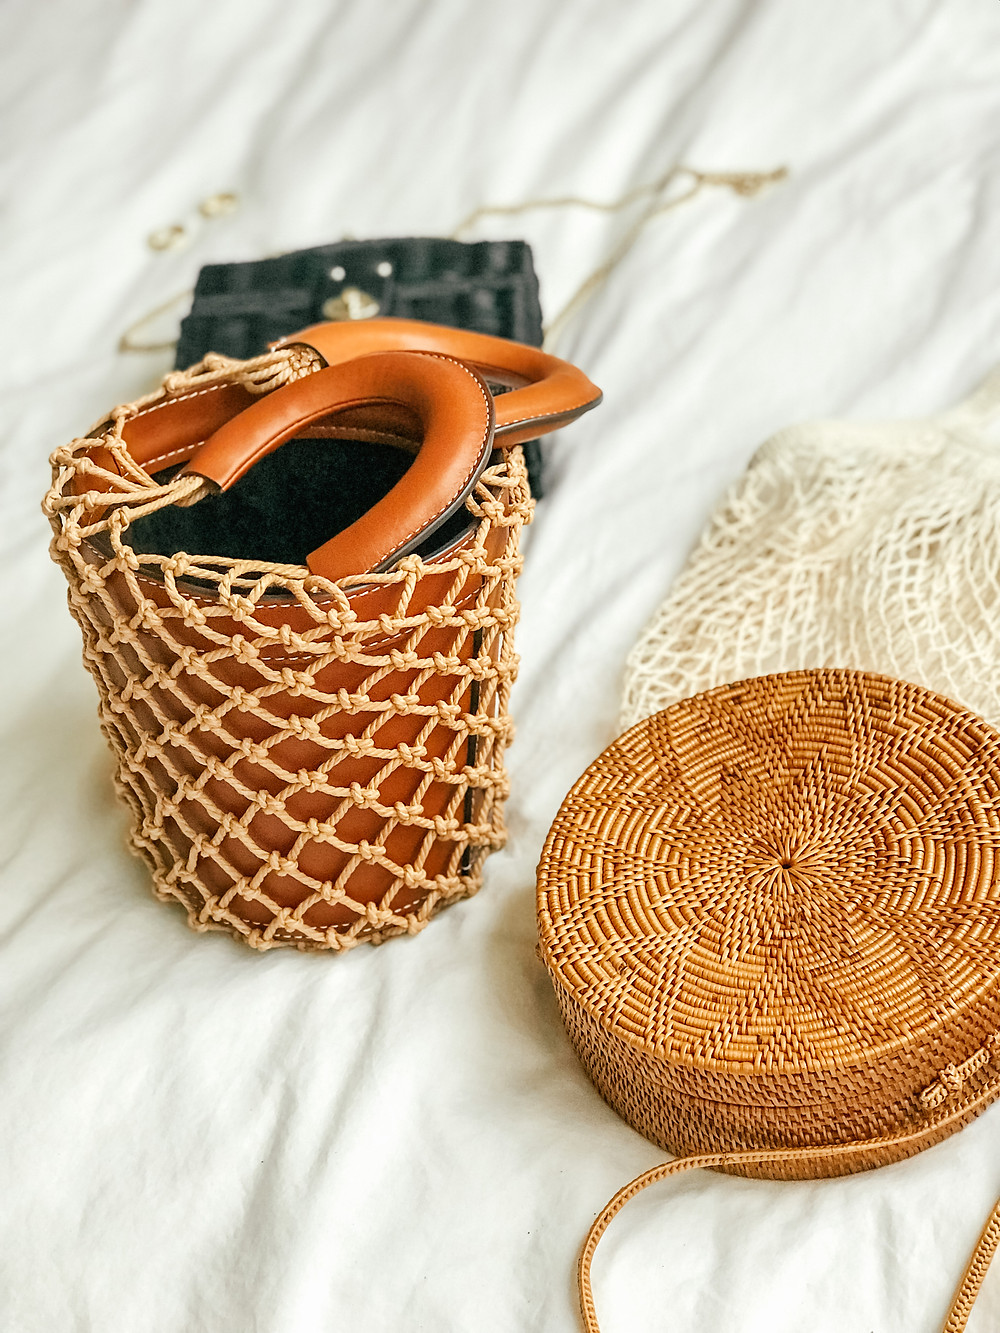 Mediterranean Packing List l Travel l A Style Alike